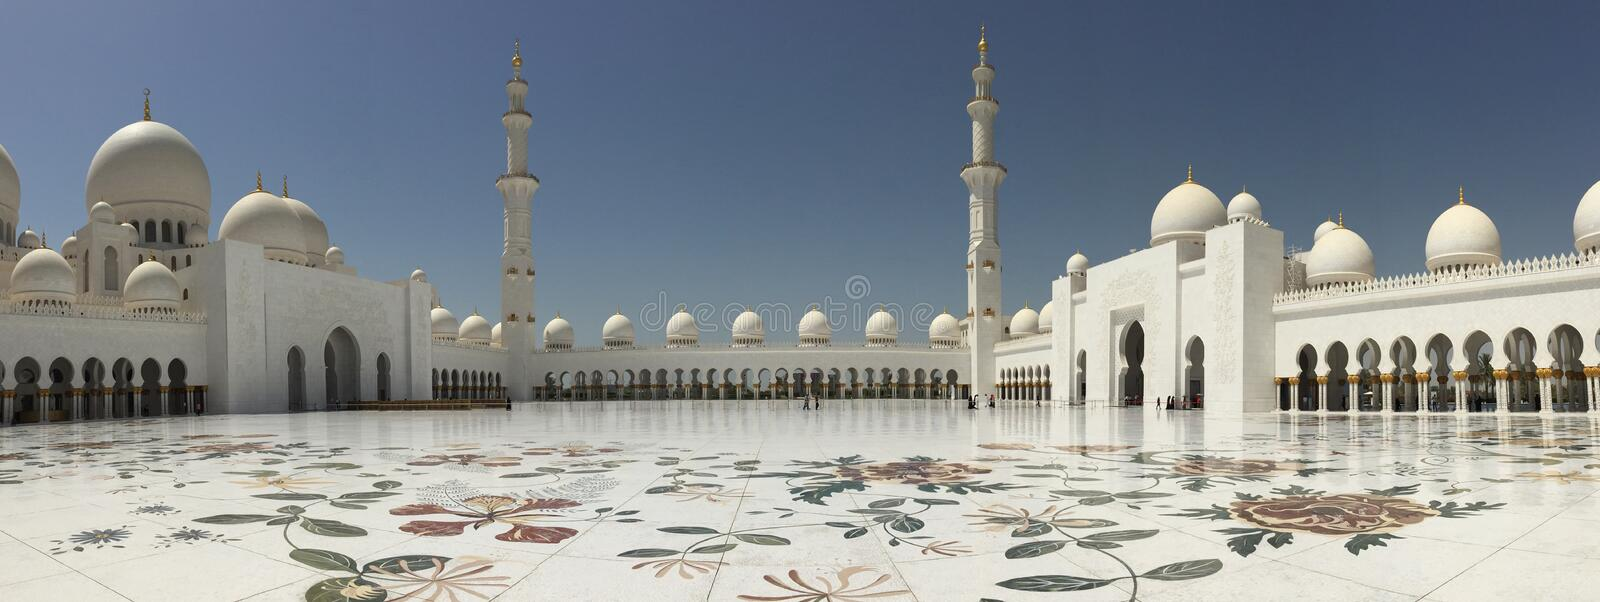 Cheik Zayed Mosque en Abu Dhabi, Emirats Arabes Unis photographie stock